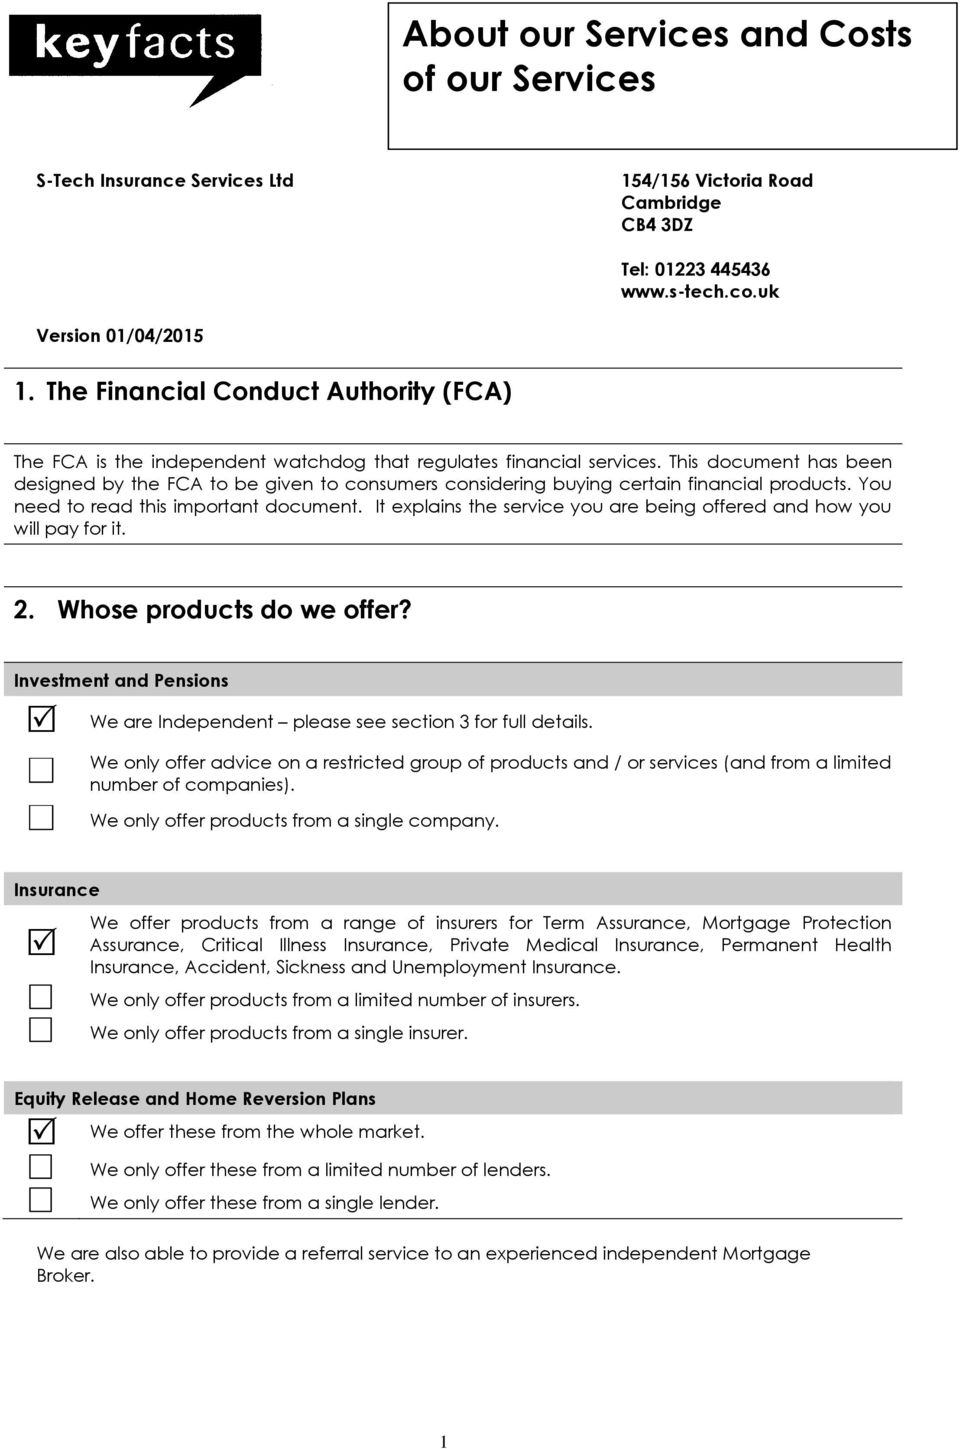 This document has been designed by the FCA to be given to consumers considering buying certain financial products. You need to read this important document.